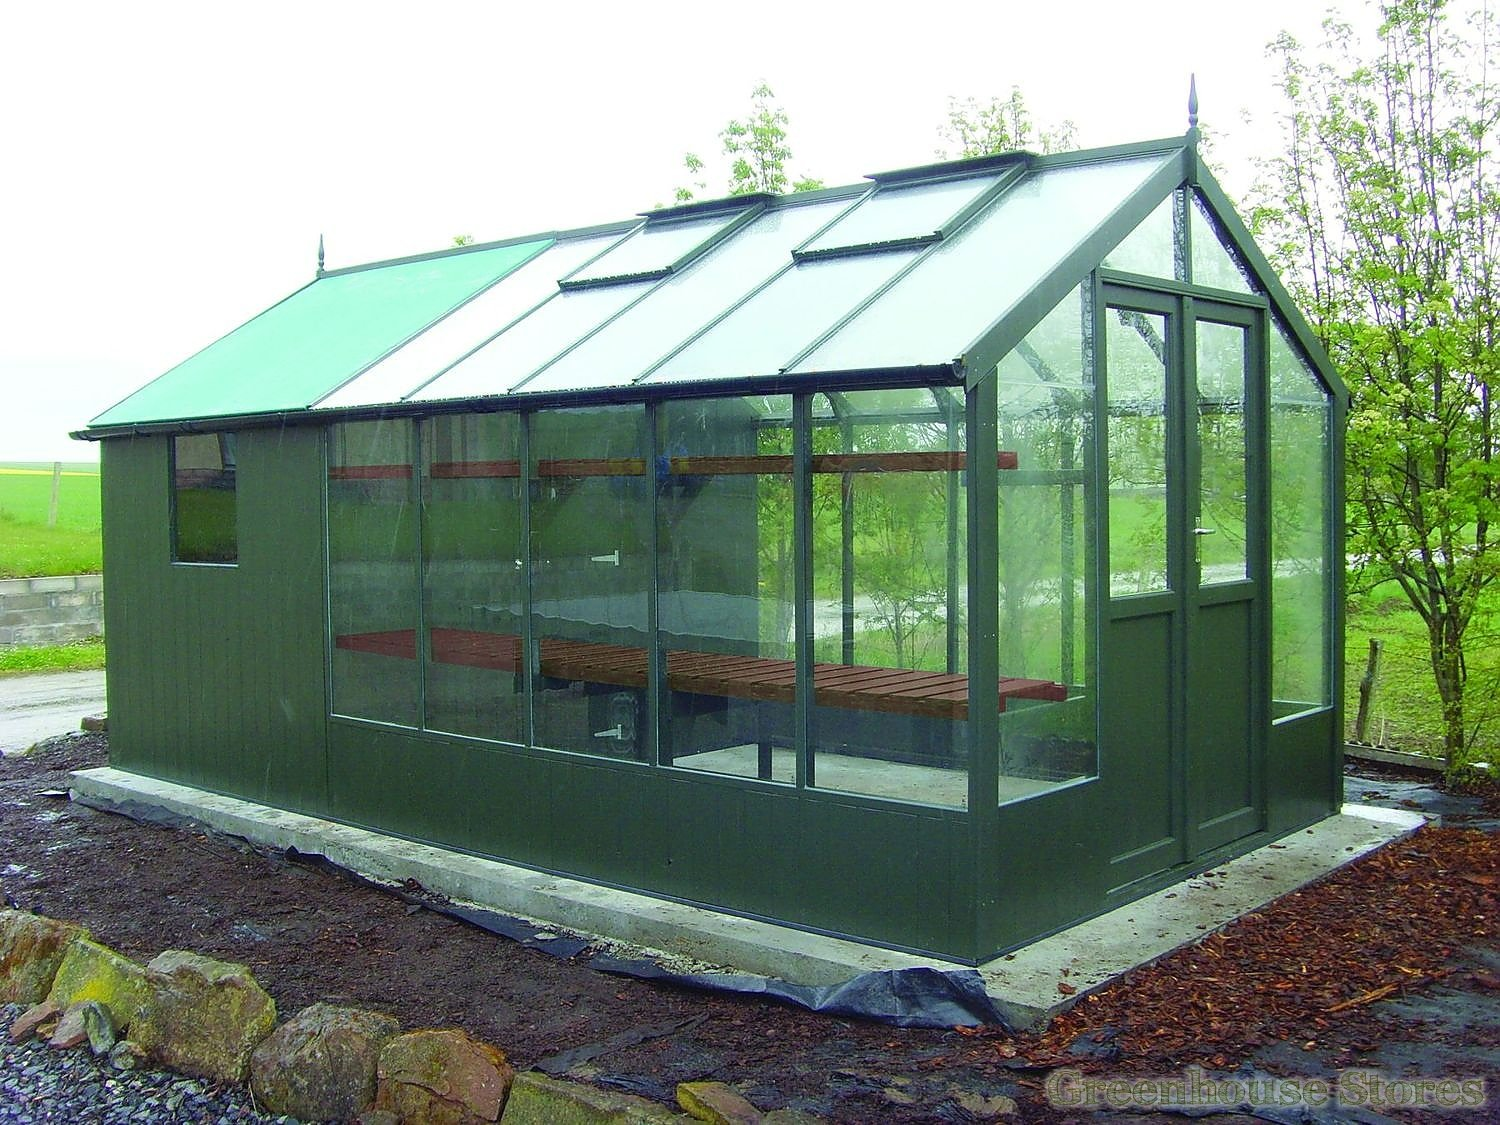 Swallow raven 8x6 wooden greenhouse greenhouse stores Green house sheds